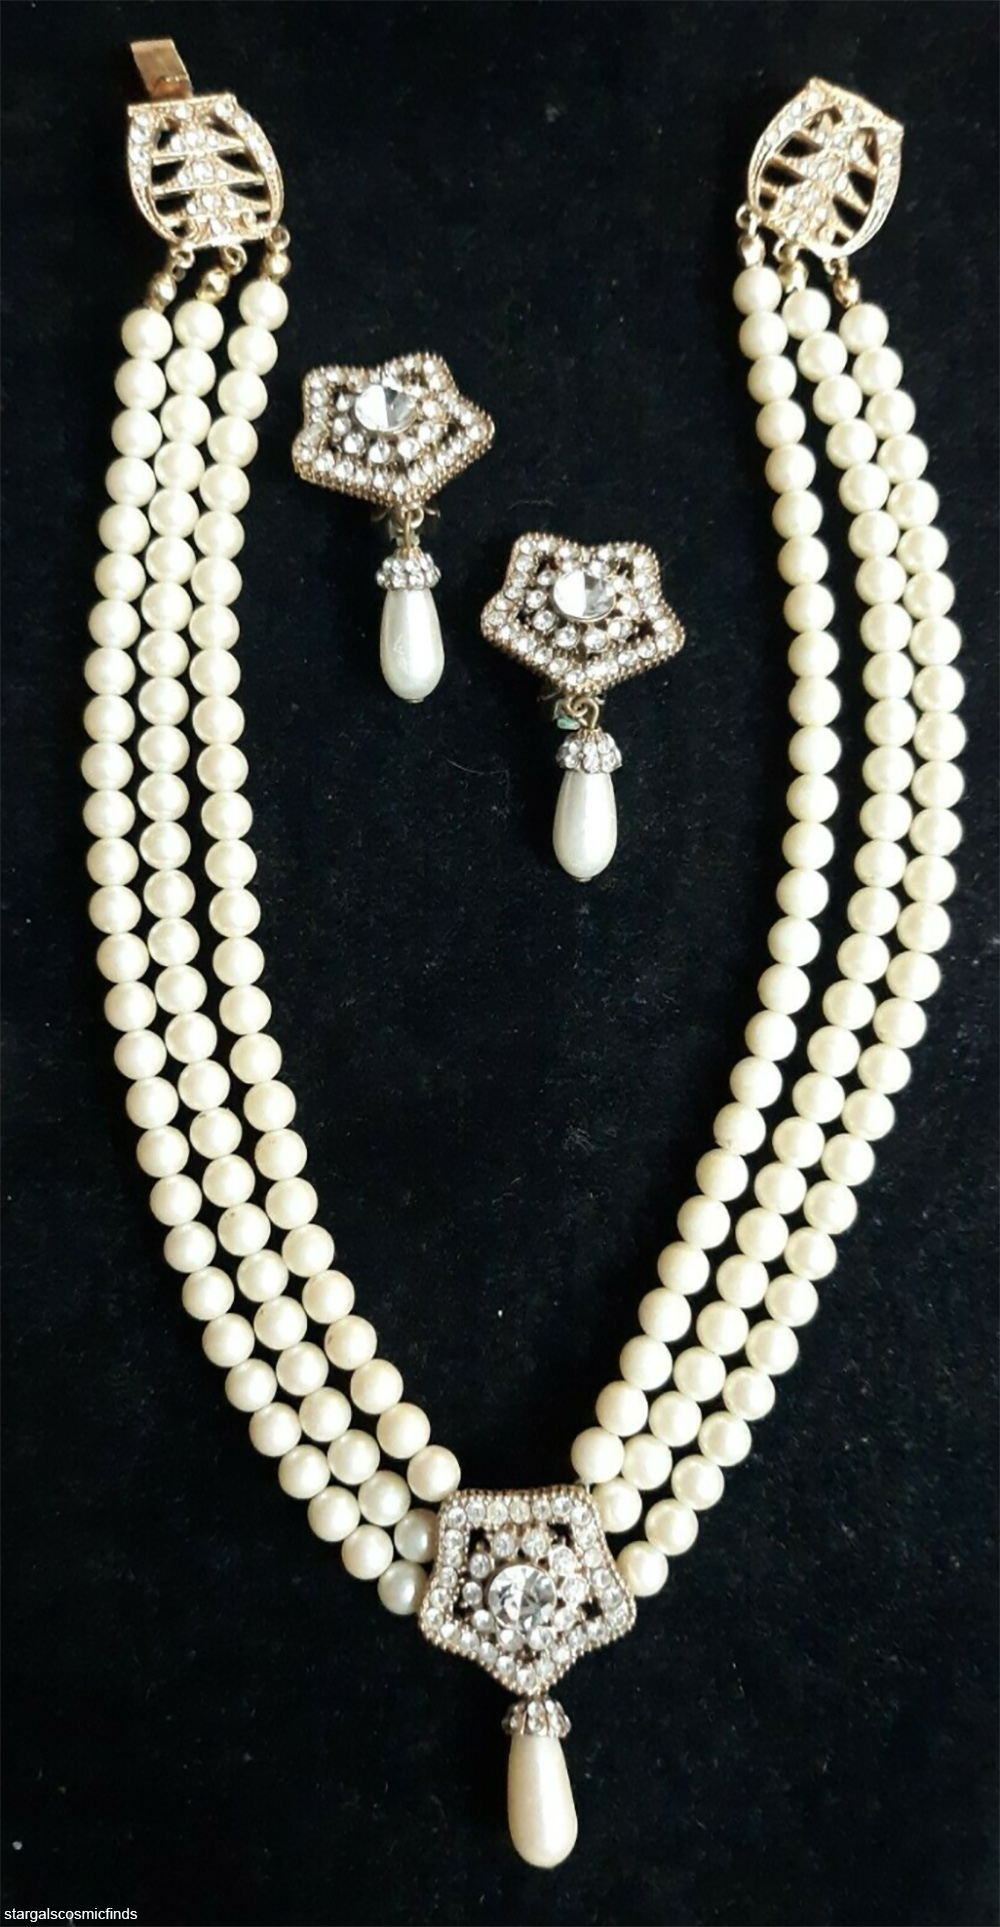 costume jewelry pearl necklace and earring set